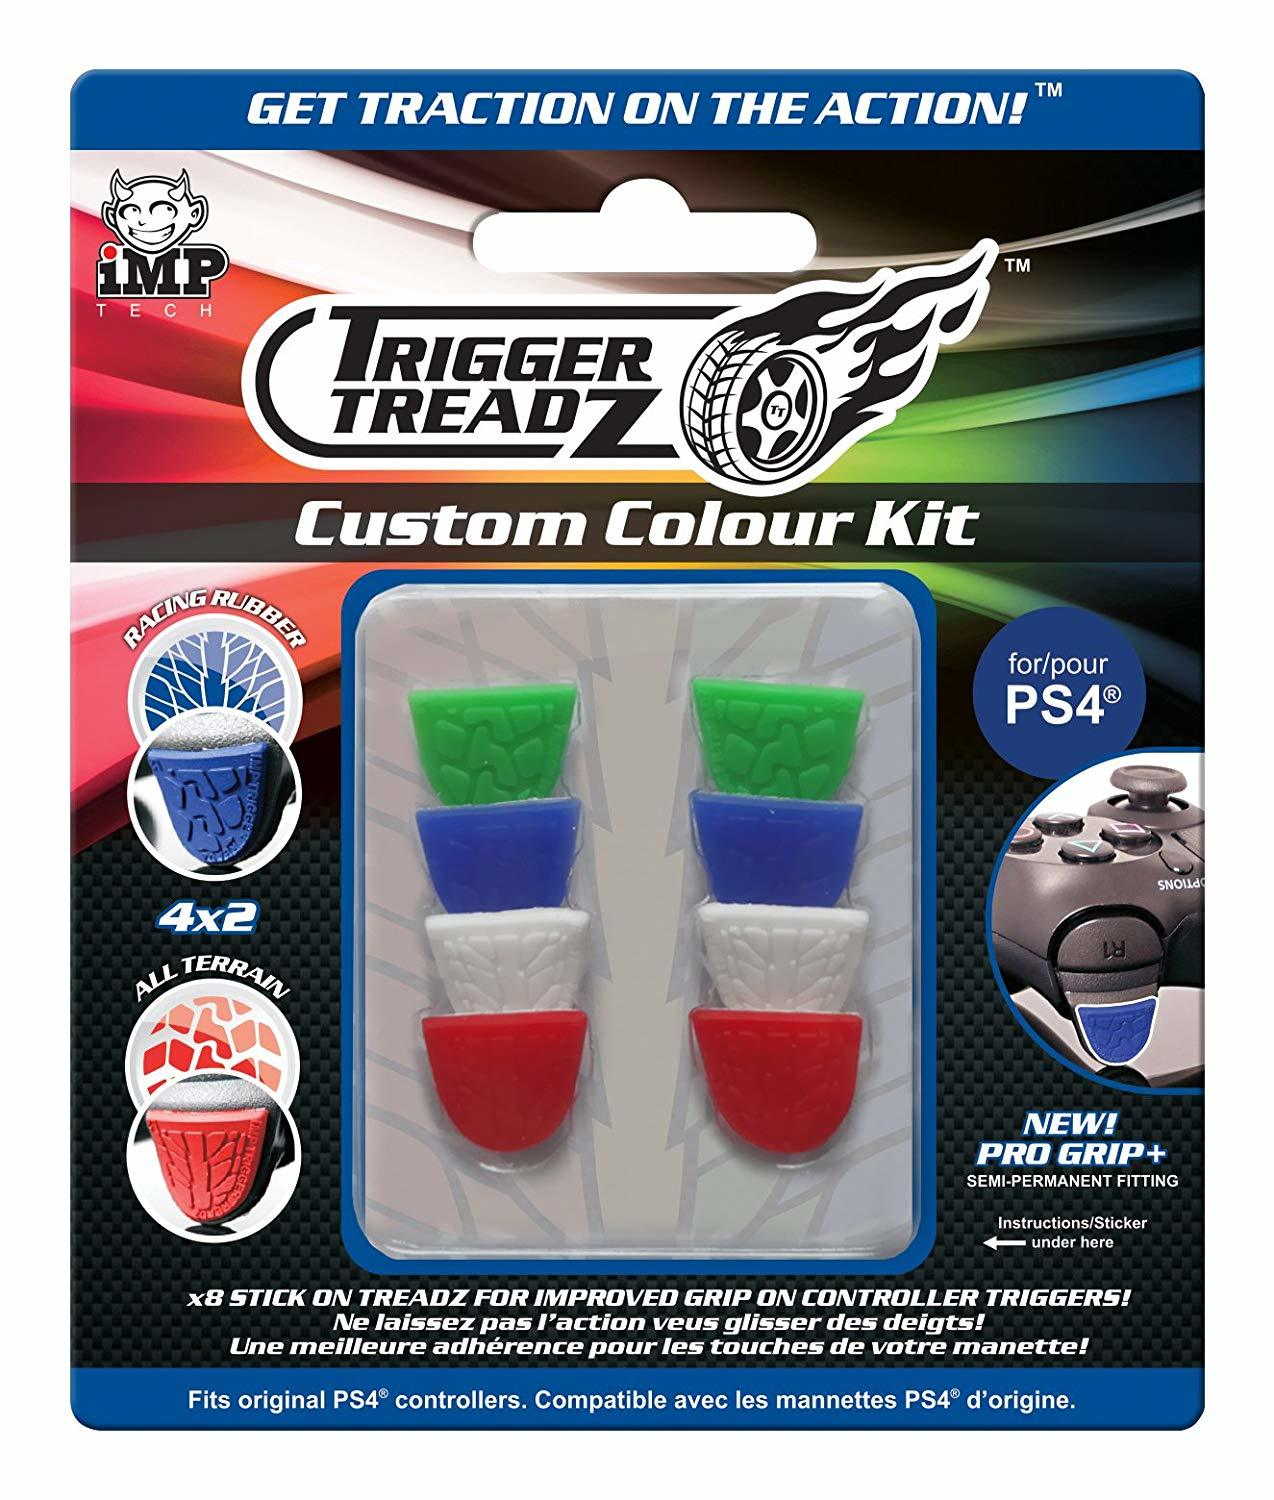 iMP Trigger Treadz Custom Colour Kit - 8 pack - PS4